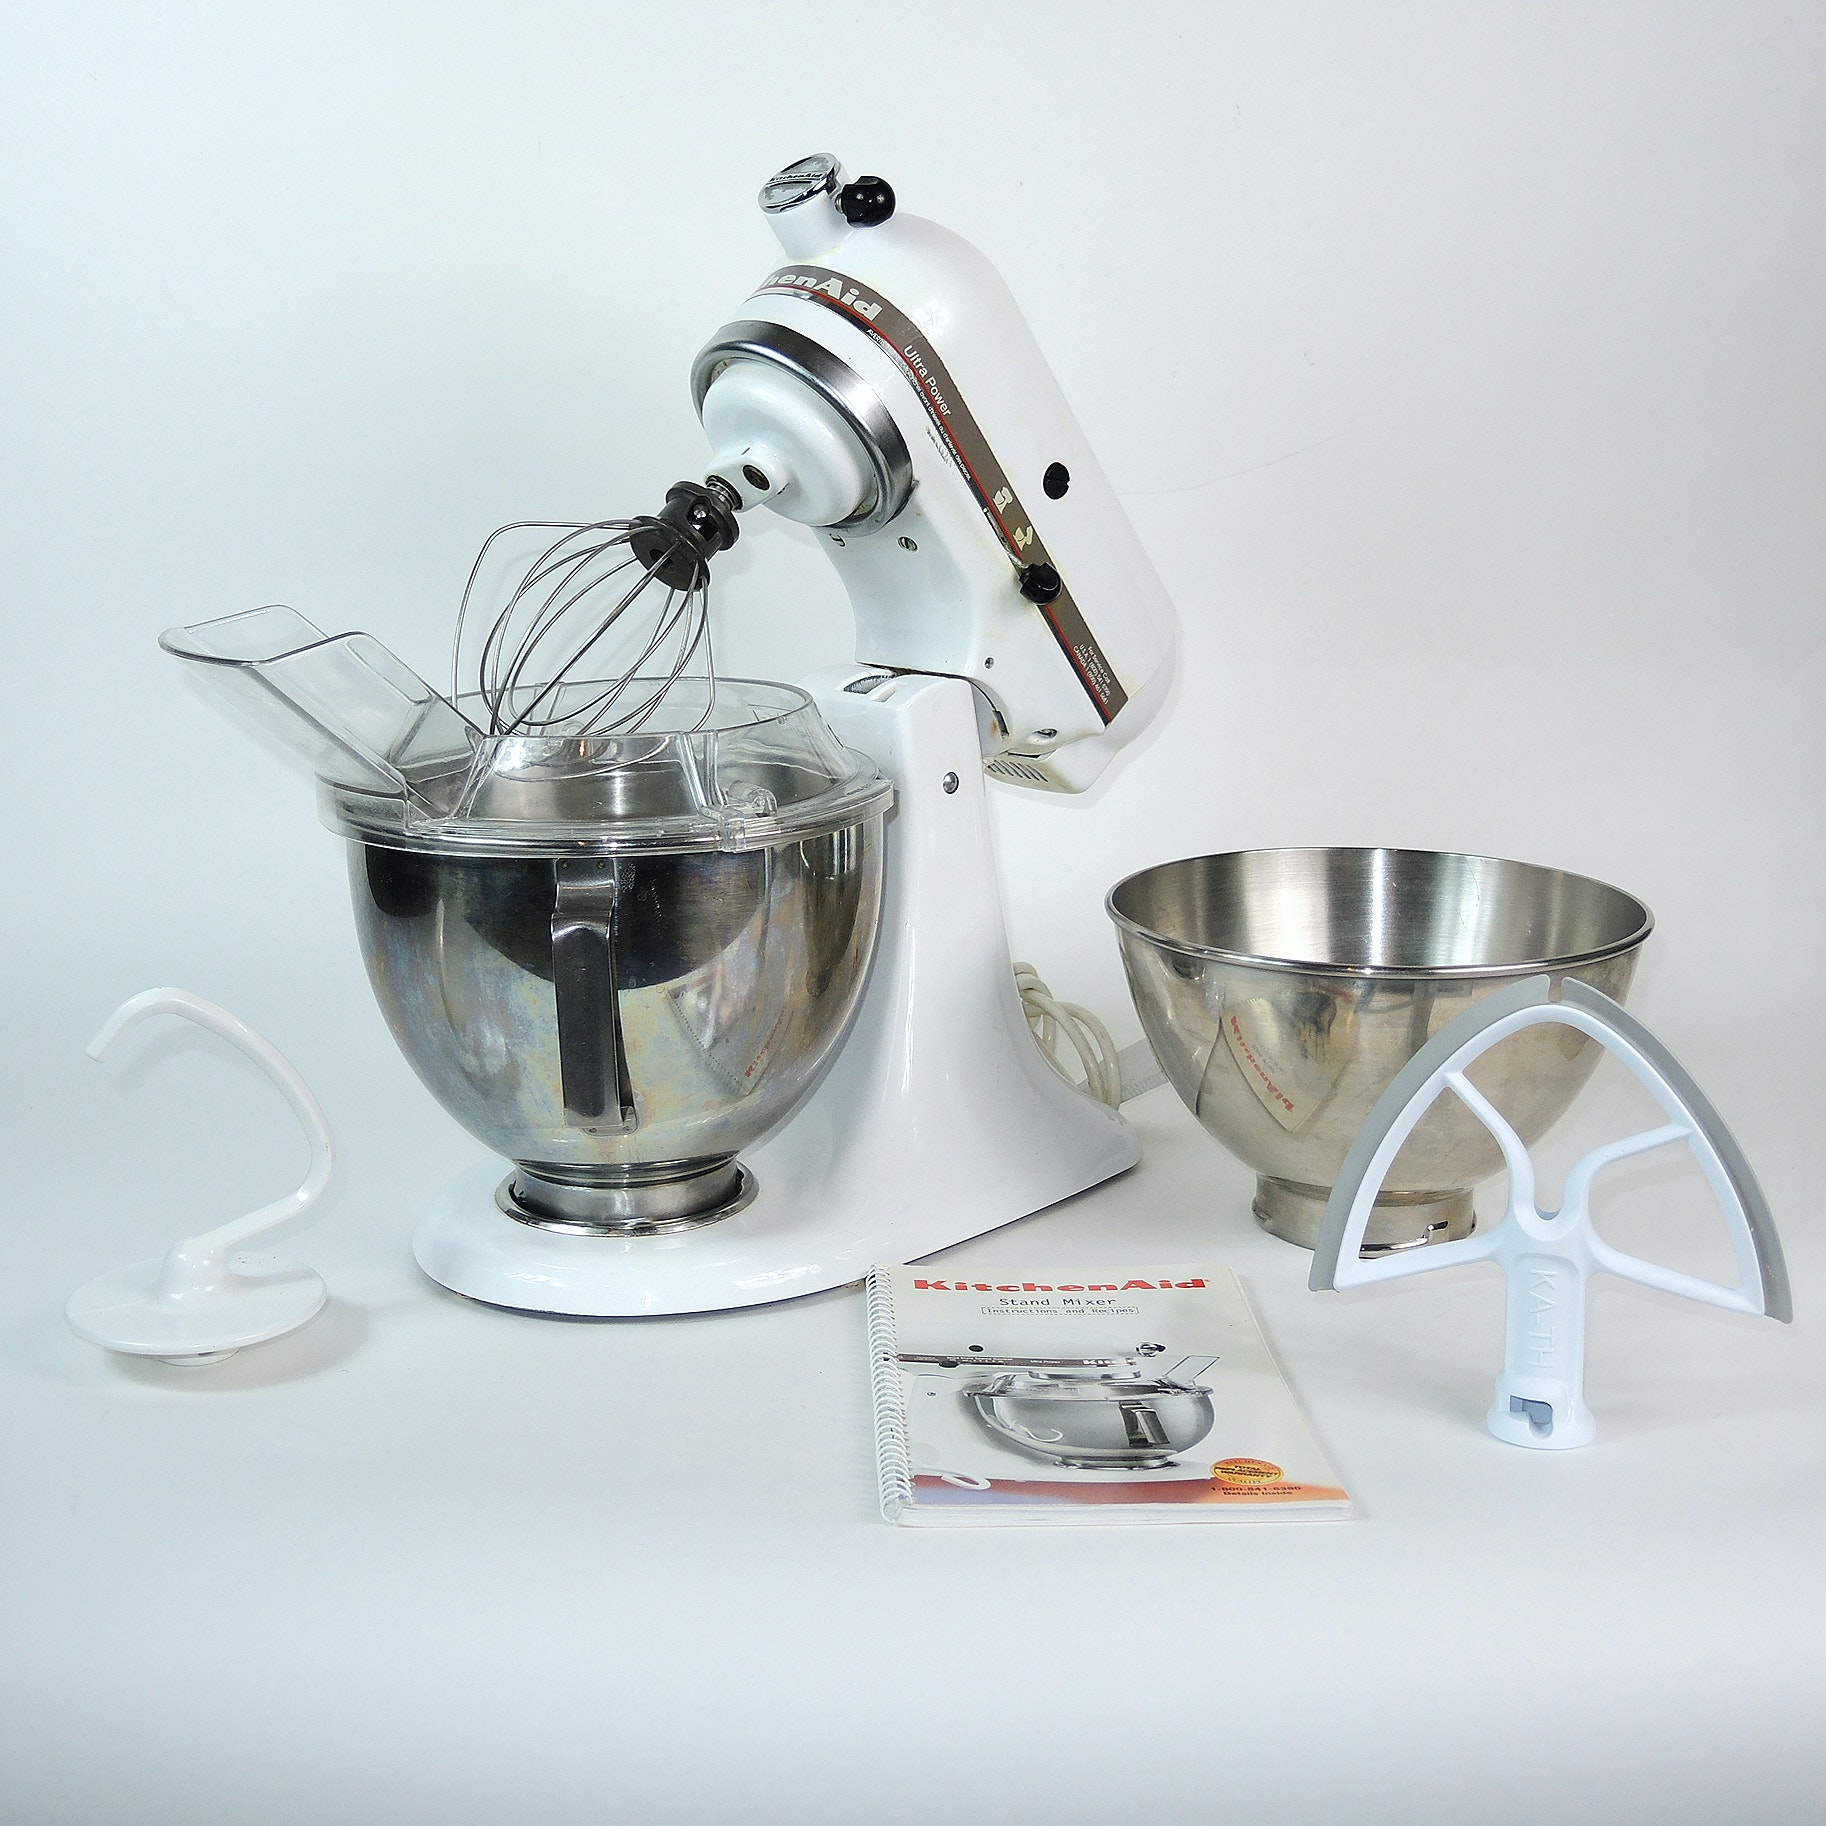 White Kitchen Aid Mixer with Accessories